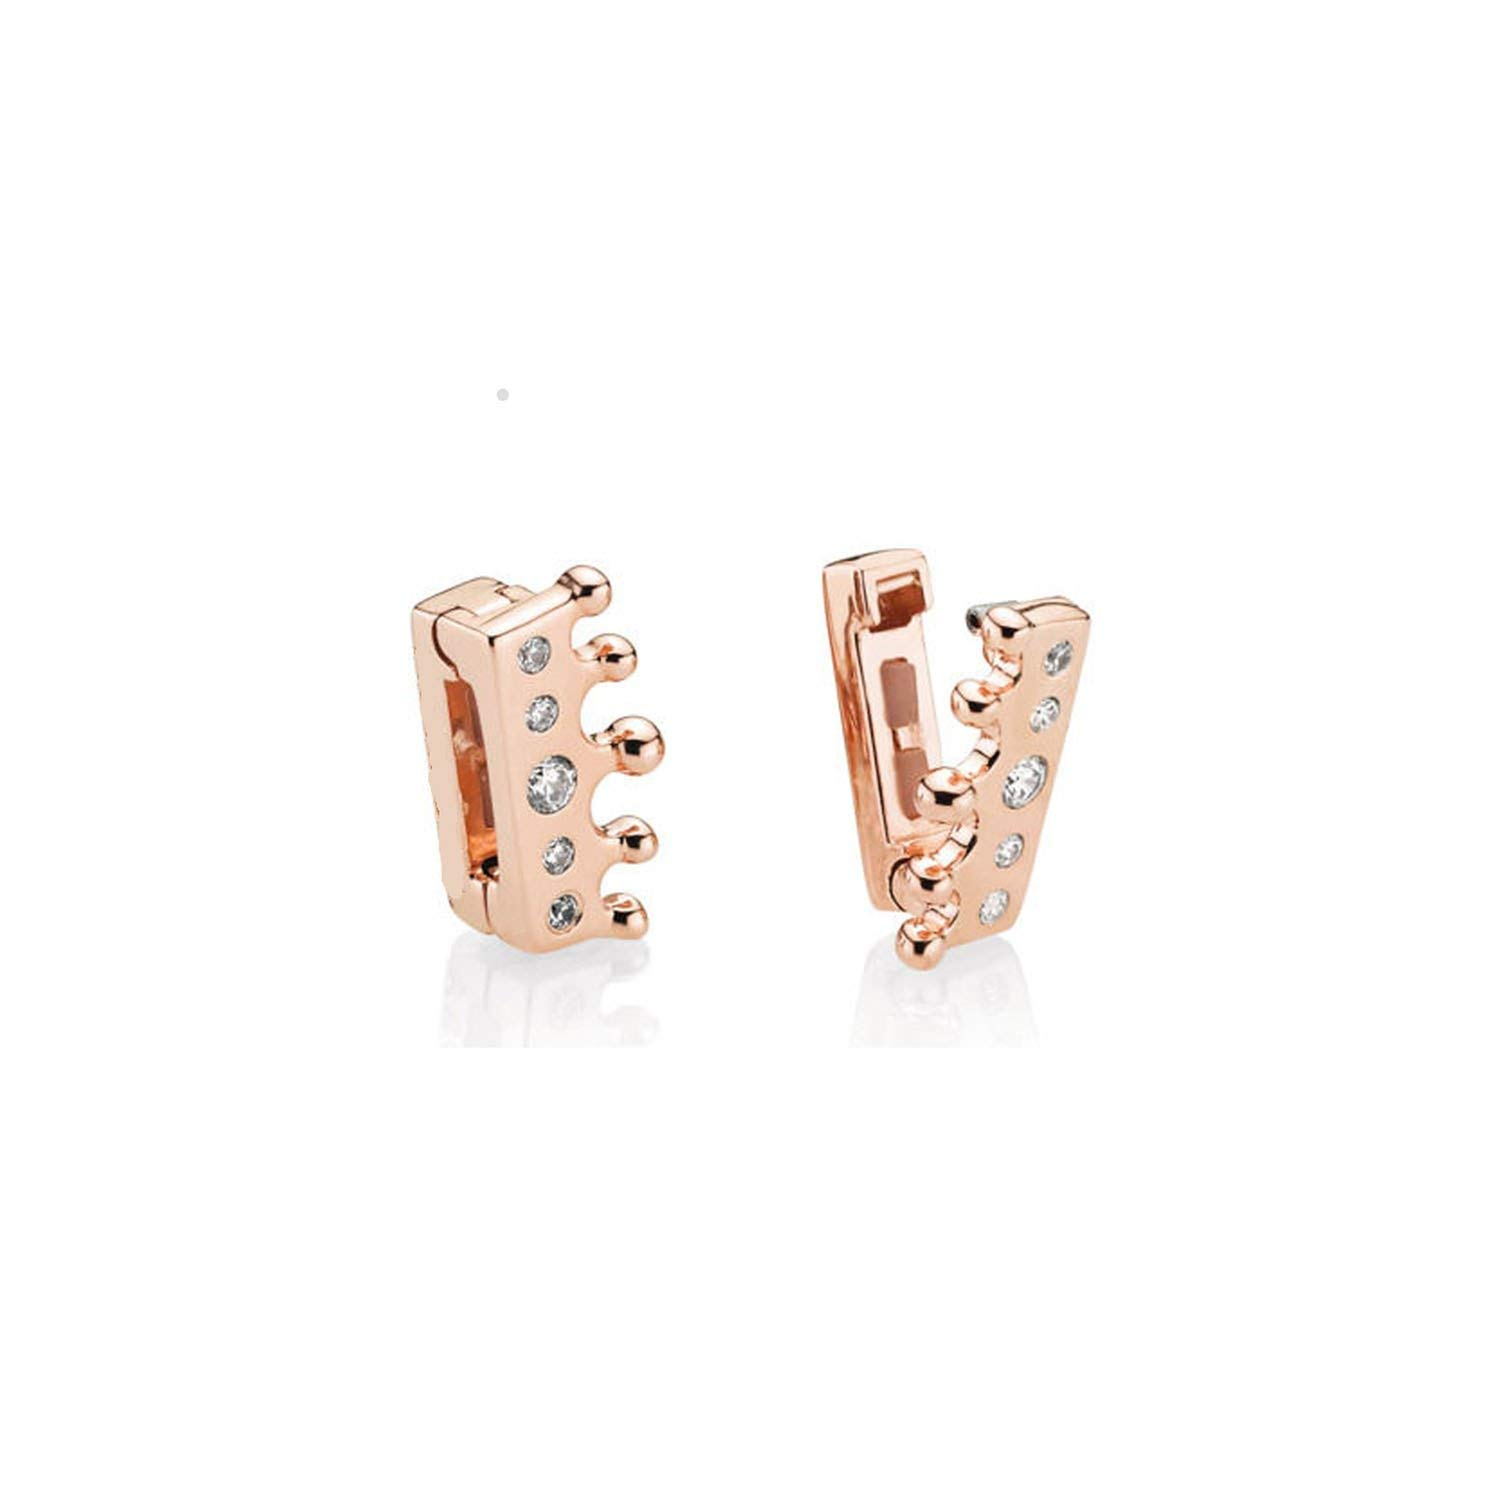 Silver Reflexions Clip Charms Love Heart Bead Fit Bracelet for Women DIY Jewelry,Hl089